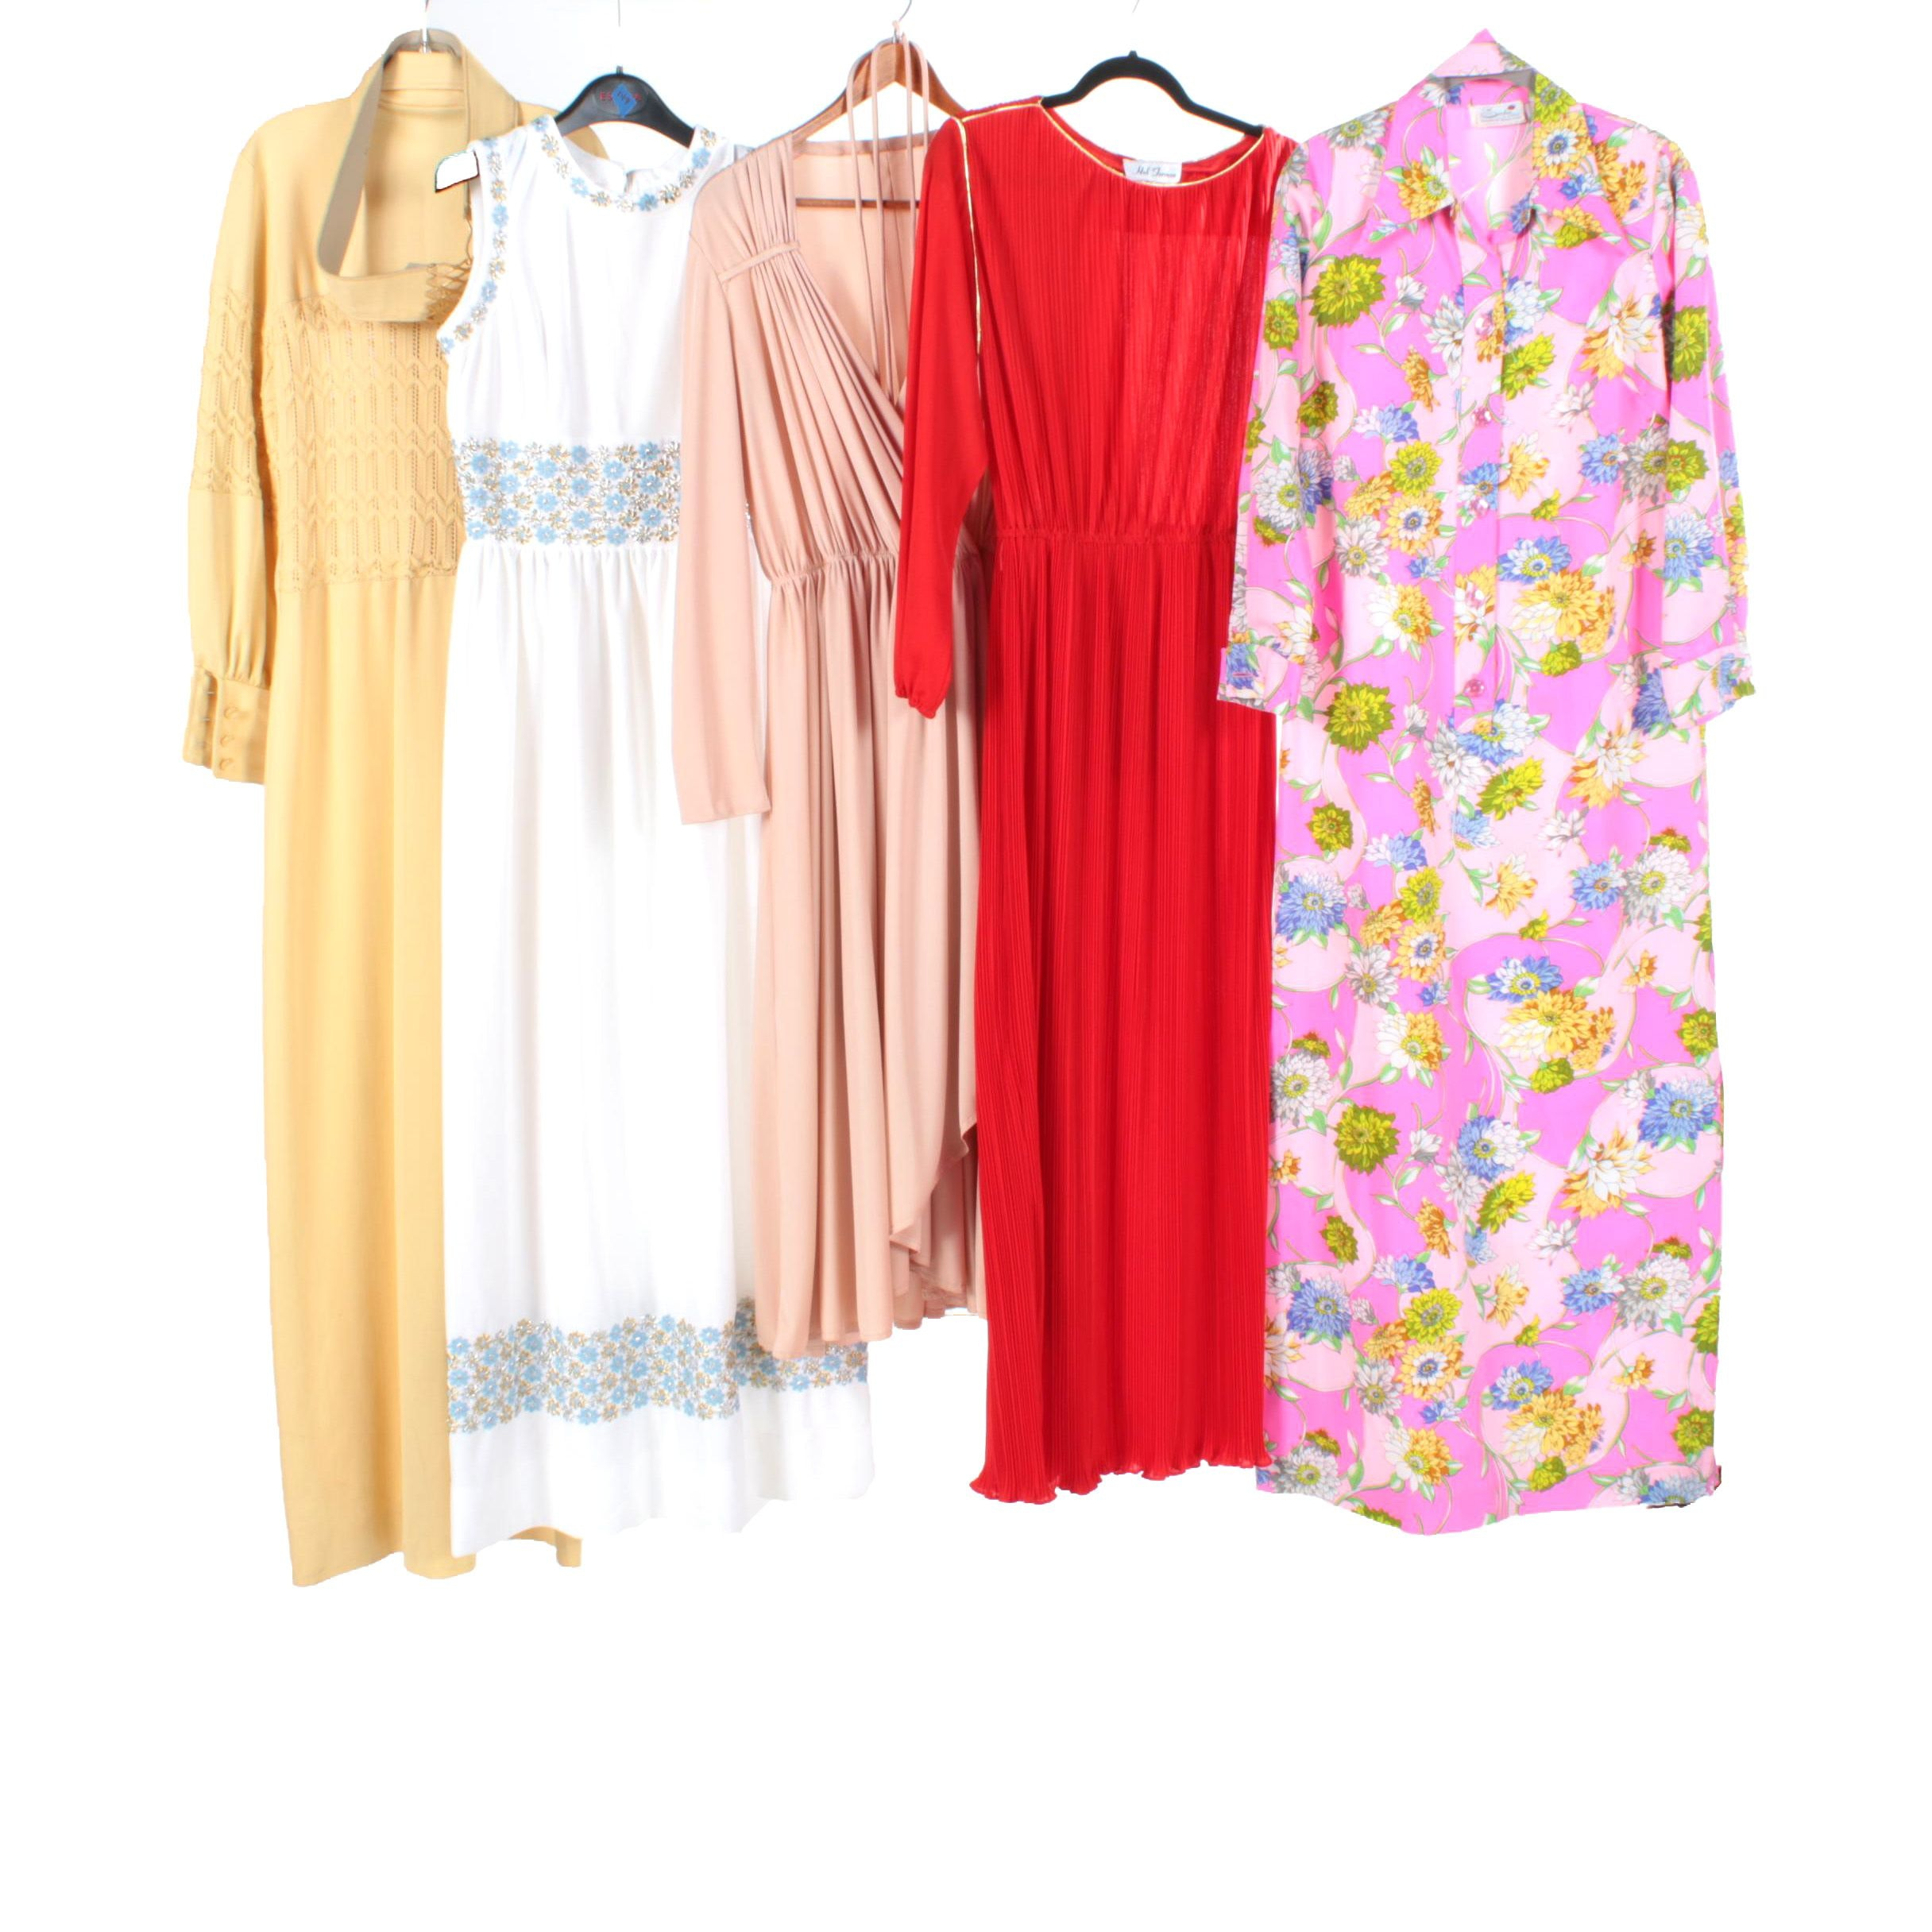 1970s Colorful Maxi Dresses Including Pleated, Floral